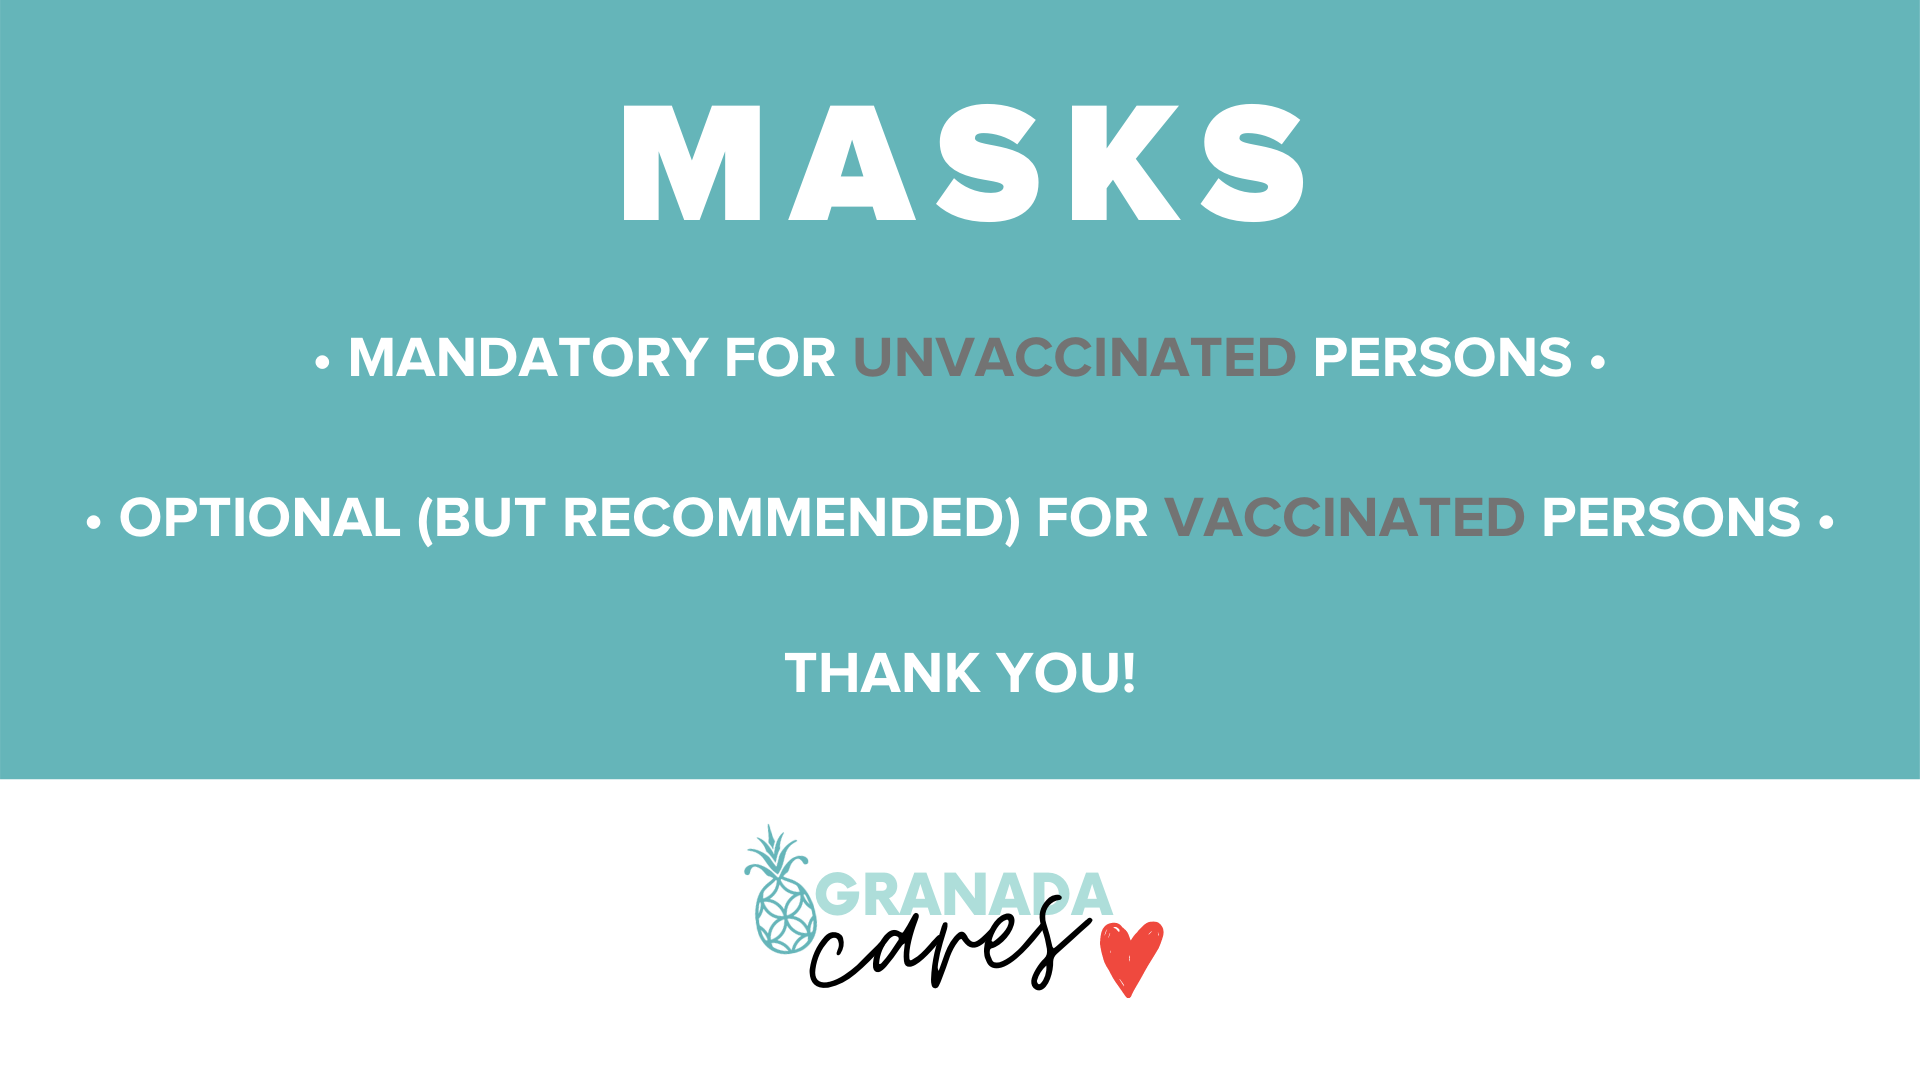 Masks are Mandatory for Unvaccinated